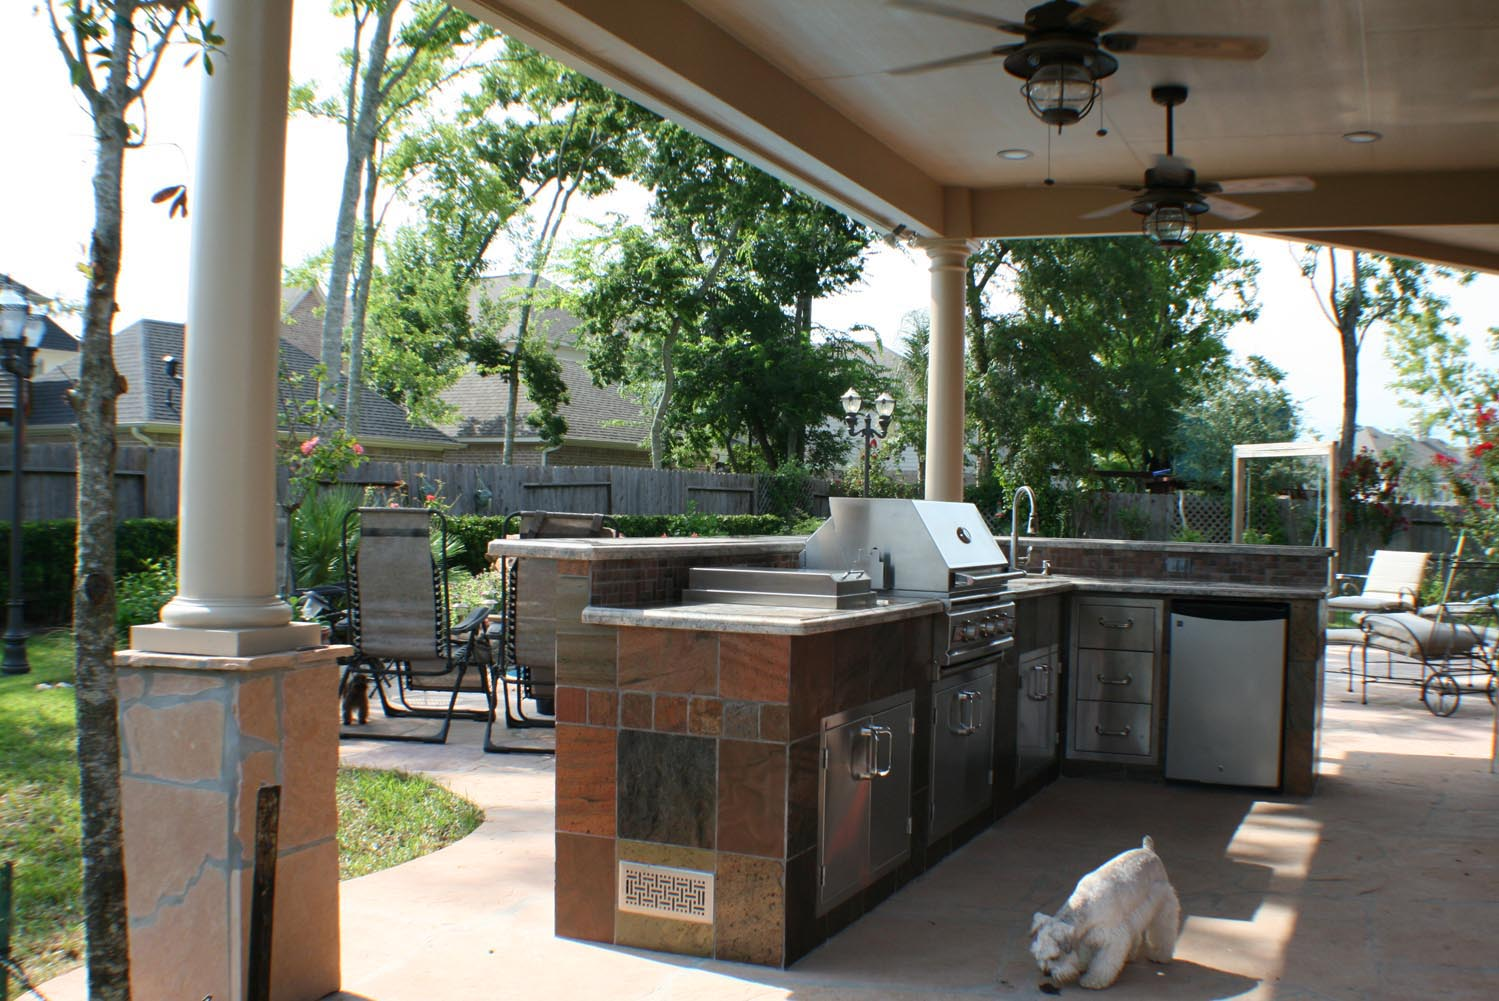 Patio Cover and Outdoor Kitchen in Houston TX  HHI Patio